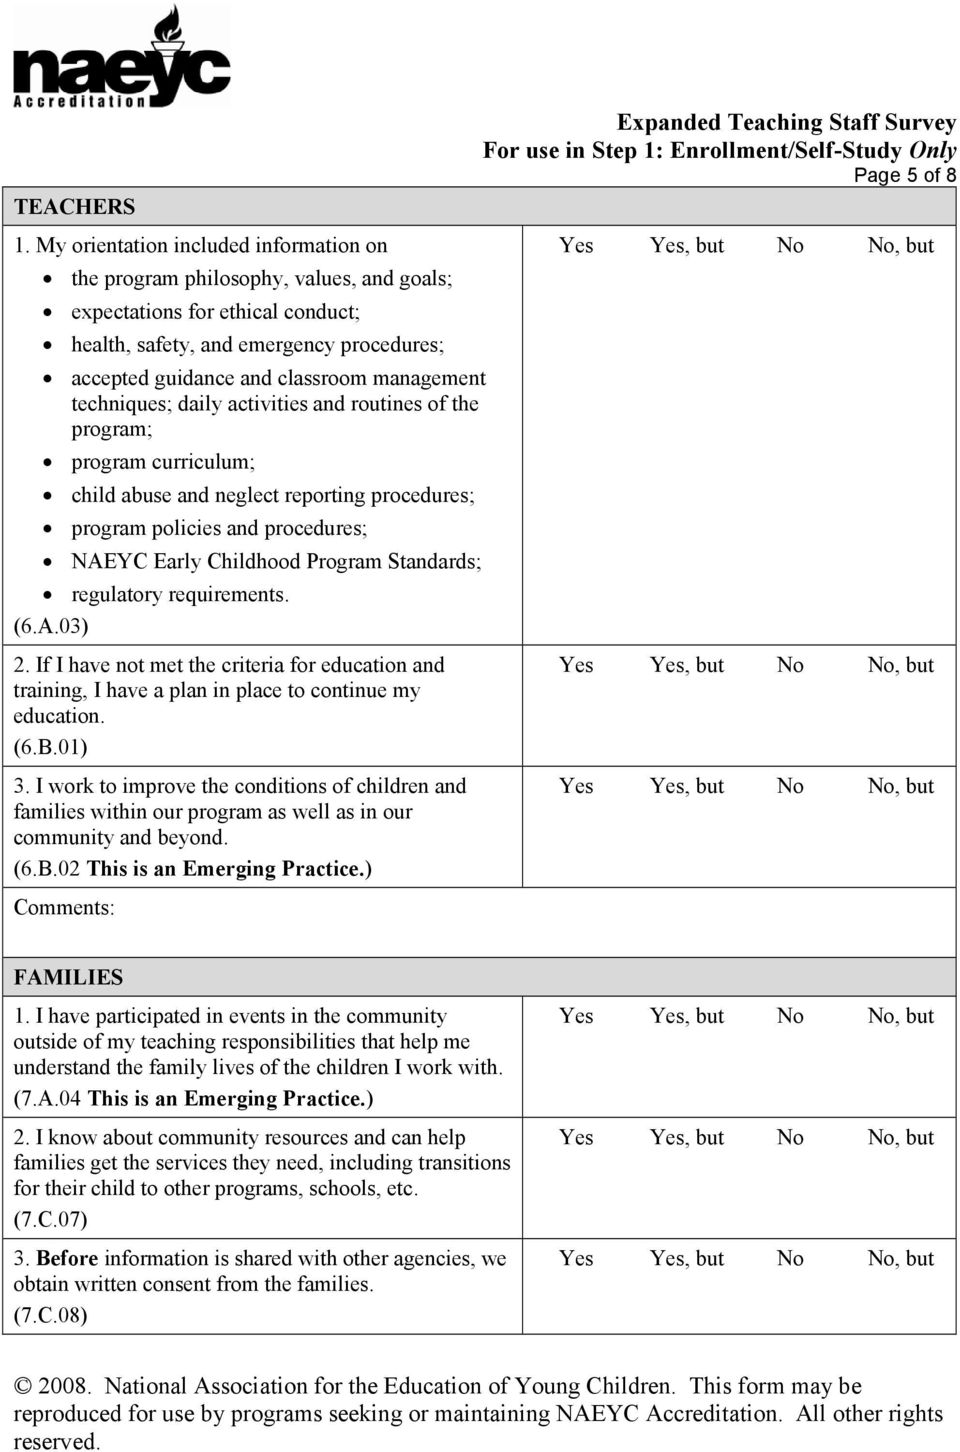 management techniques; daily activities and routines of the program; program curriculum; child abuse and neglect reporting procedures; program policies and procedures; NAEYC Early Childhood Program